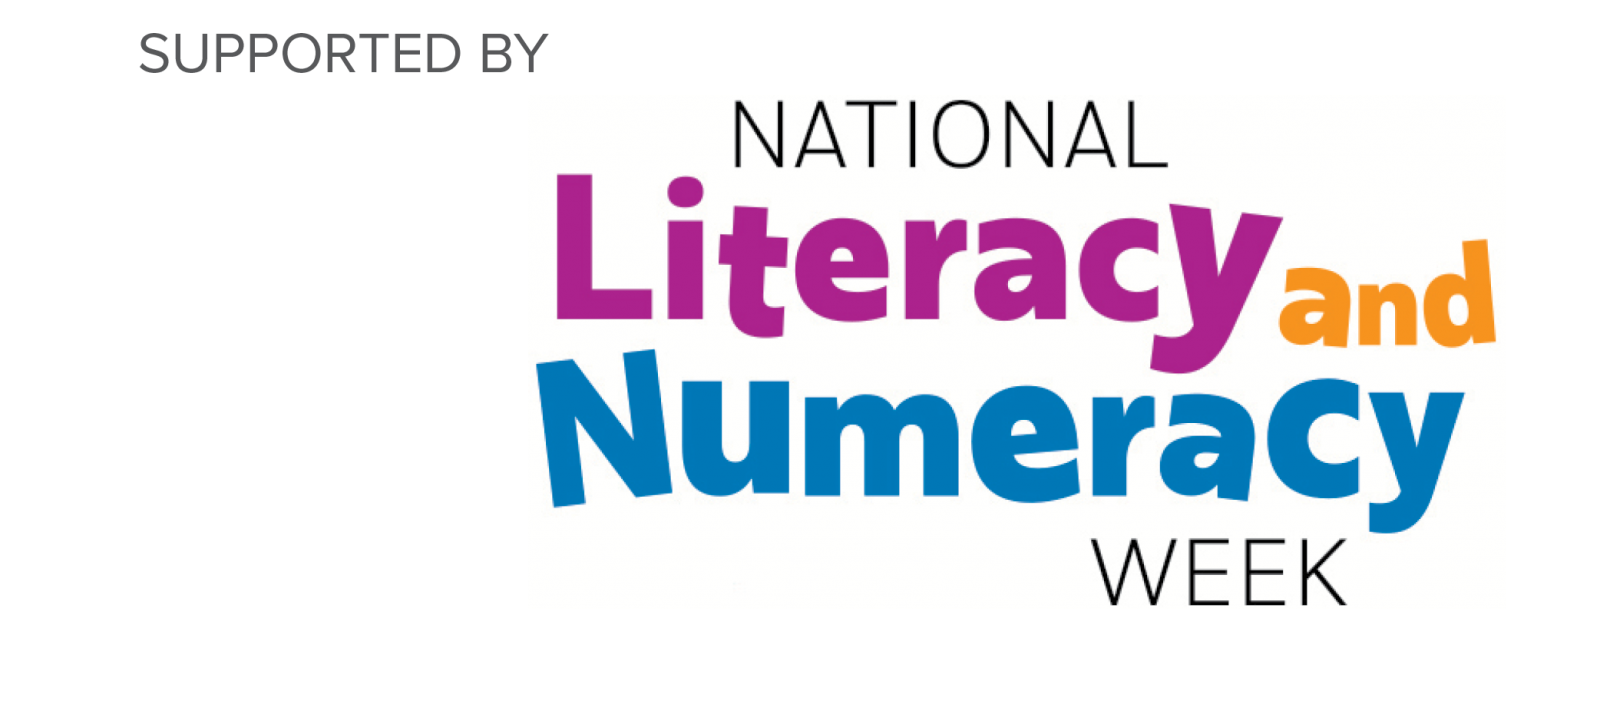 Supported by National Literacy and Numeracy Week